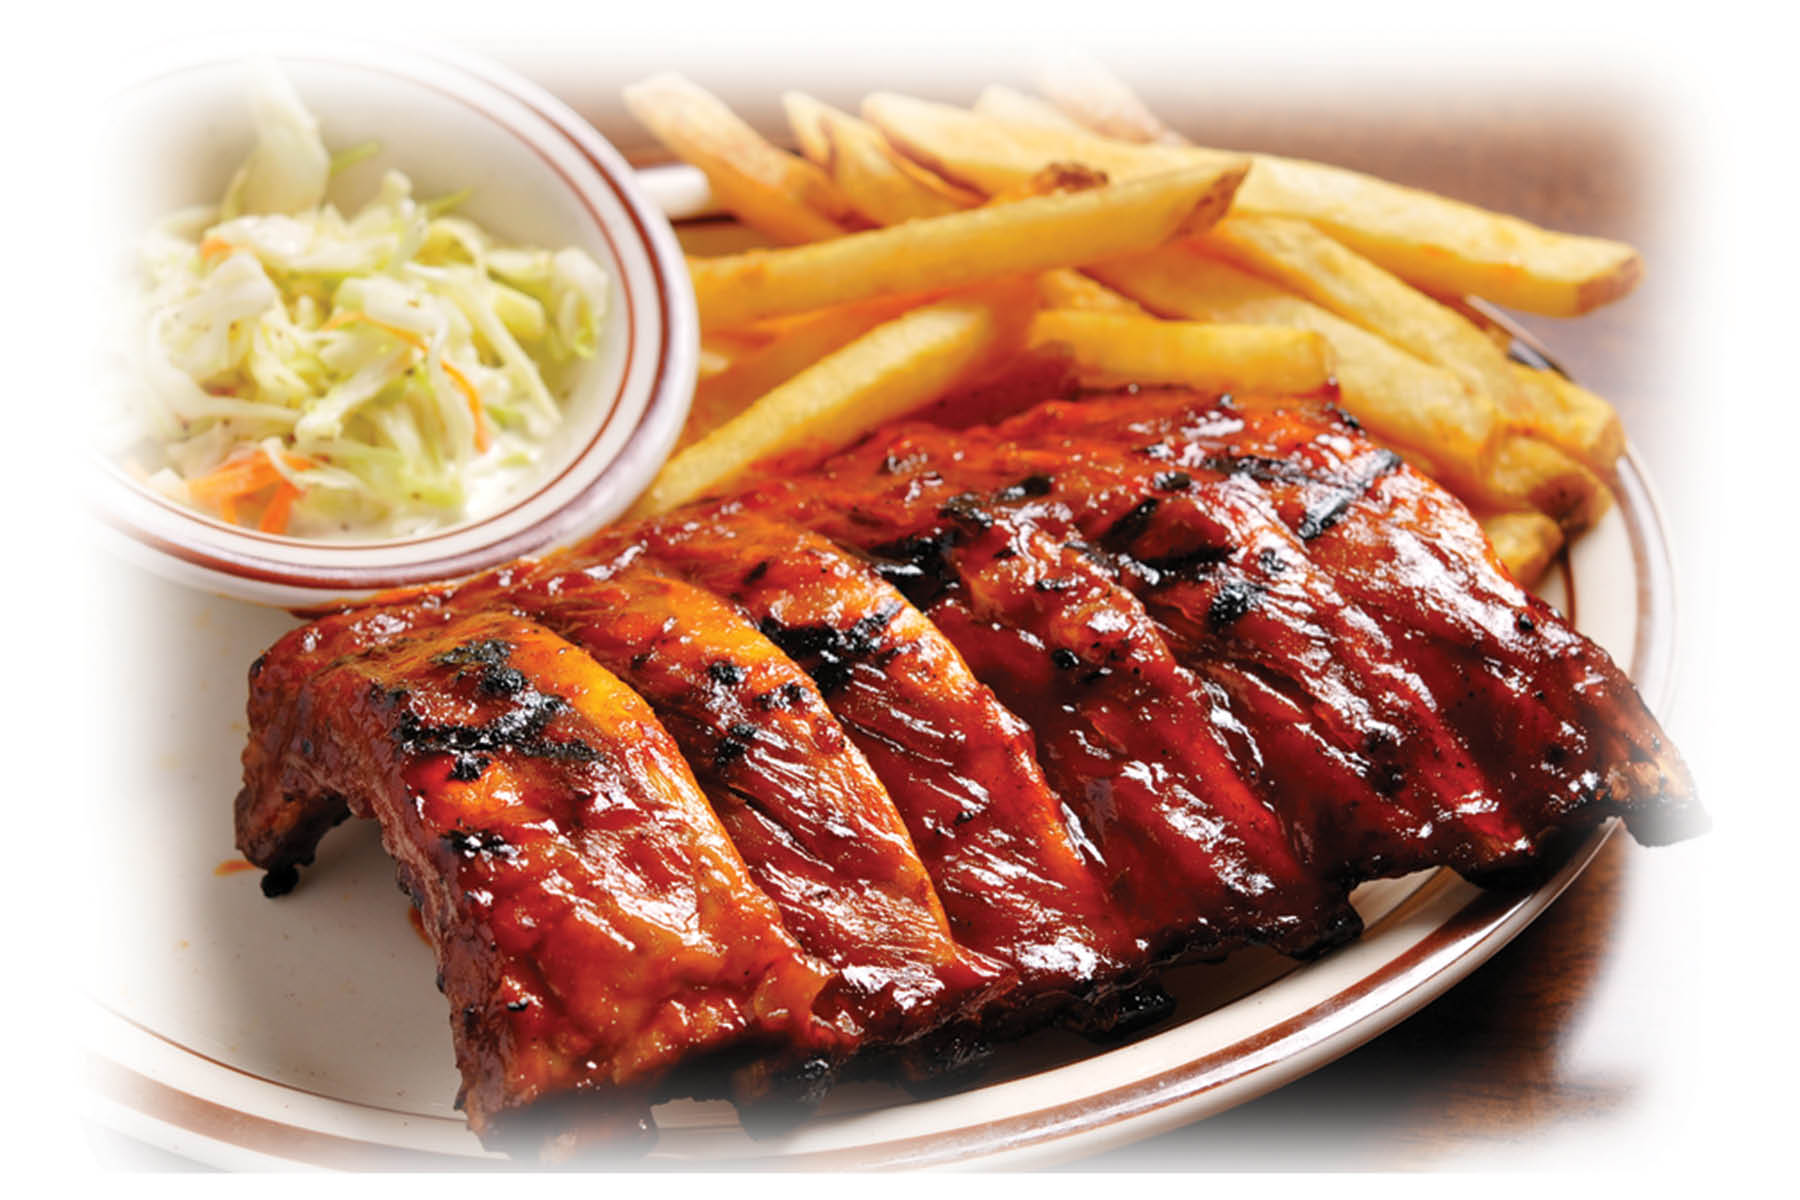 Heavenly Chicken and Ribs - Ribs